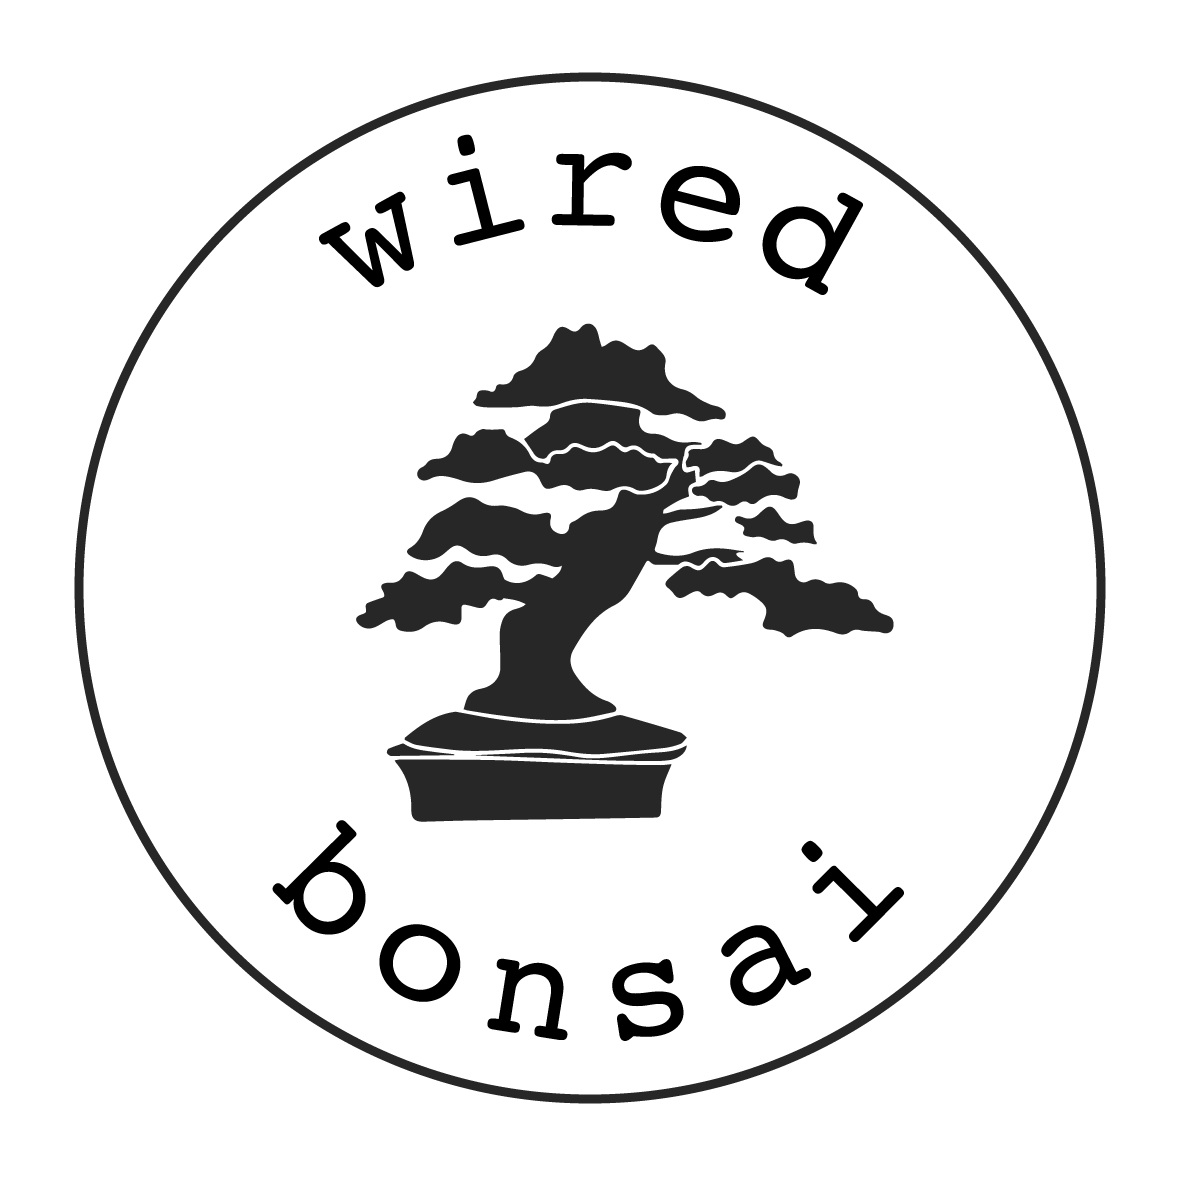 Wired Bonsai